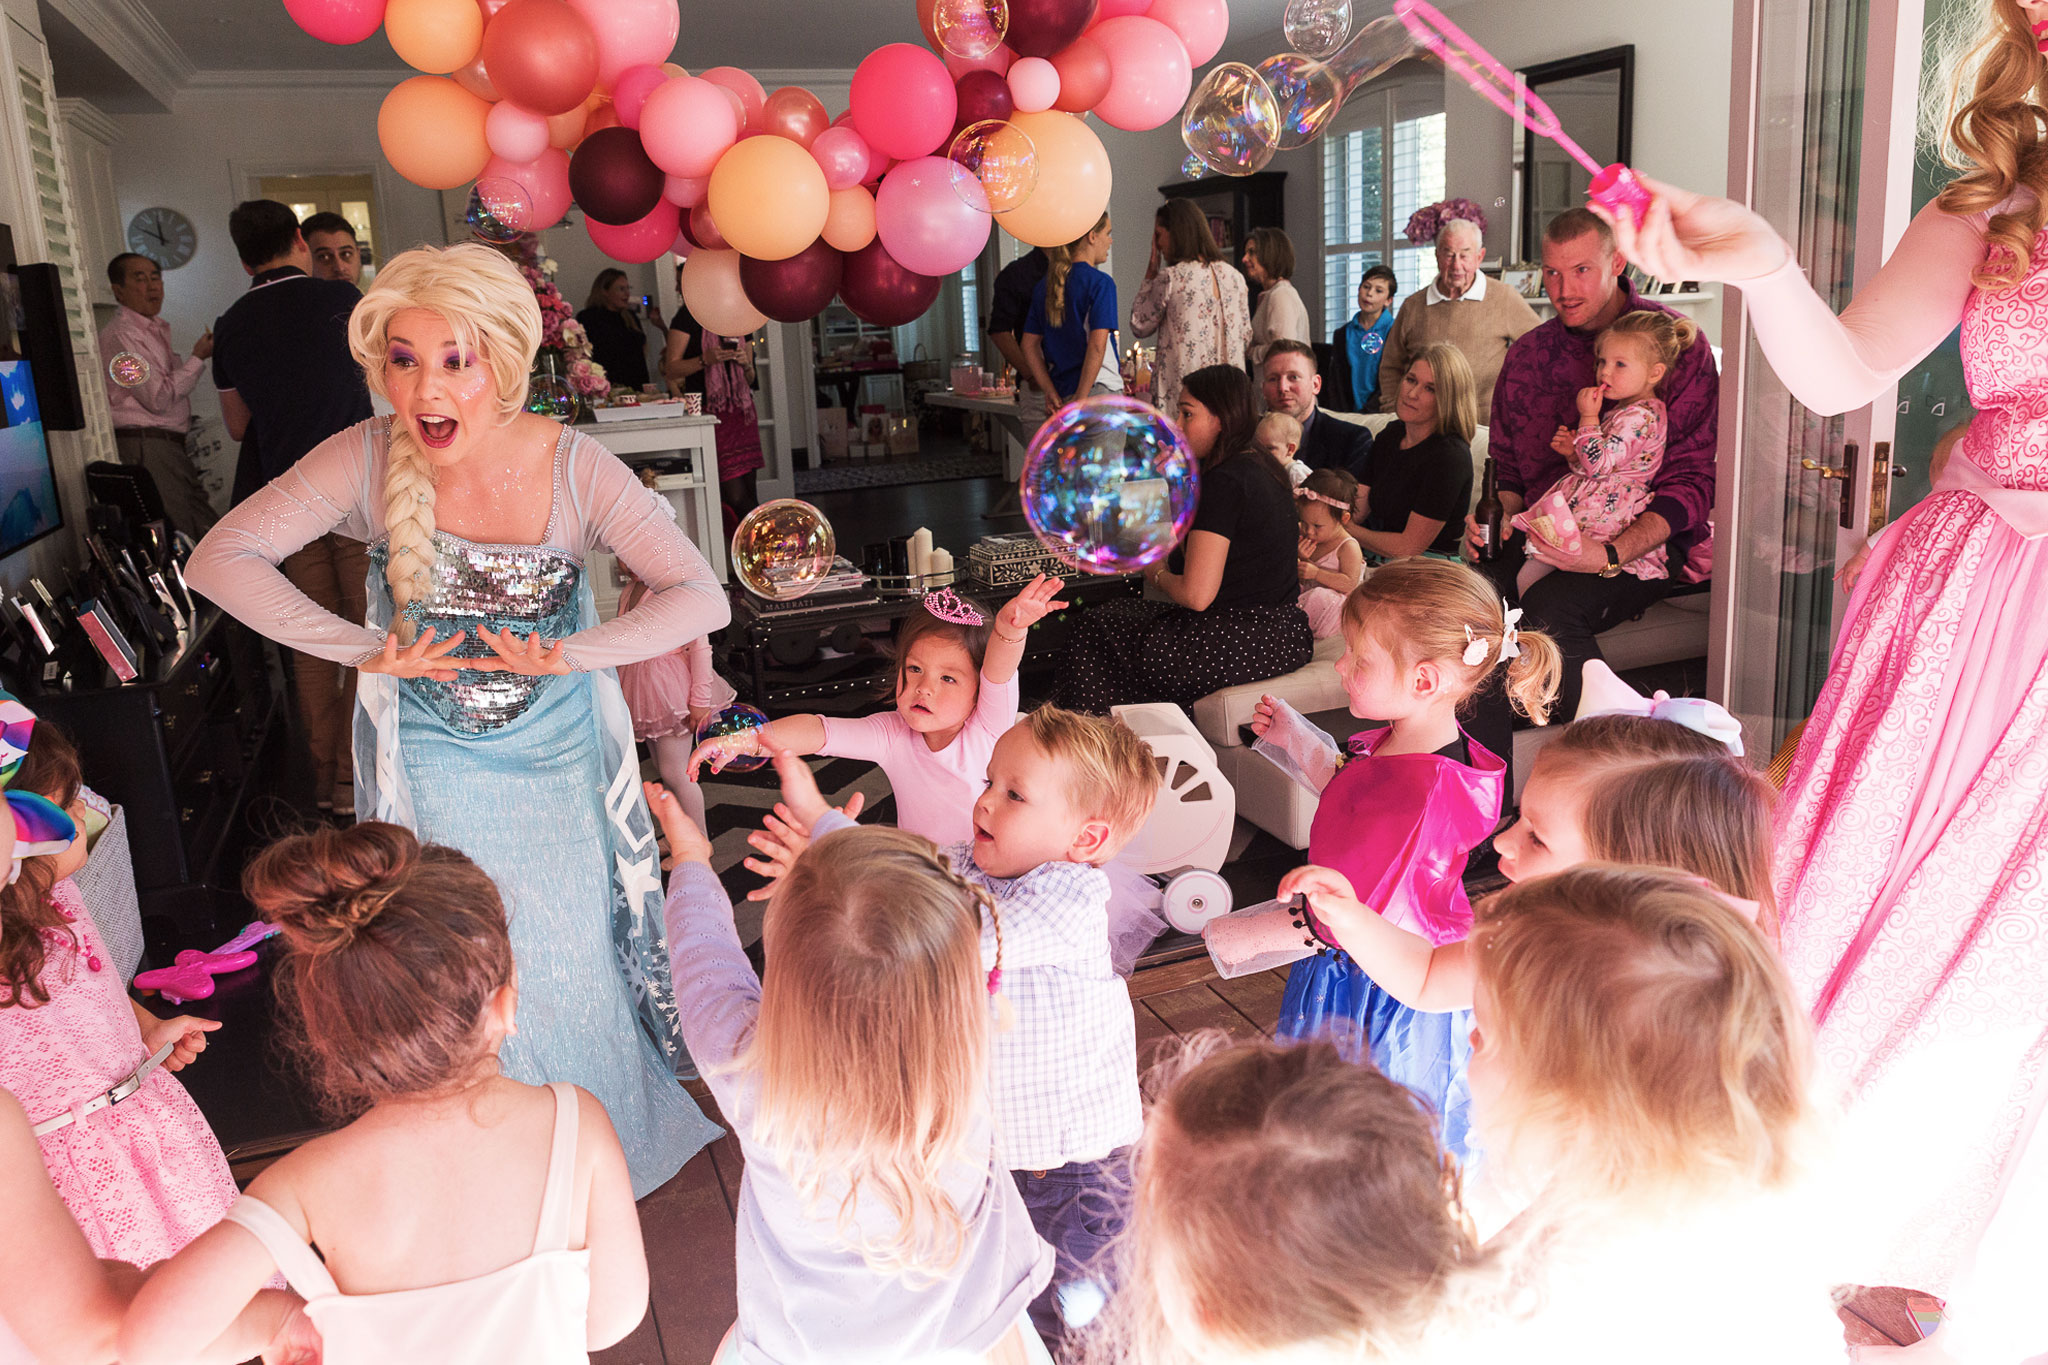 BALLET PARTY,DIY PARTY STYLING,LITTLE PARTY FACES,melbourne mum,MUMMY BLOGGER,Sarah Jane Young,sheissarahjane,THIRD BIRTHDAY, ELSA, SLEEPING BEAUTY, BALLET THEME PARTY, PINK PARTY